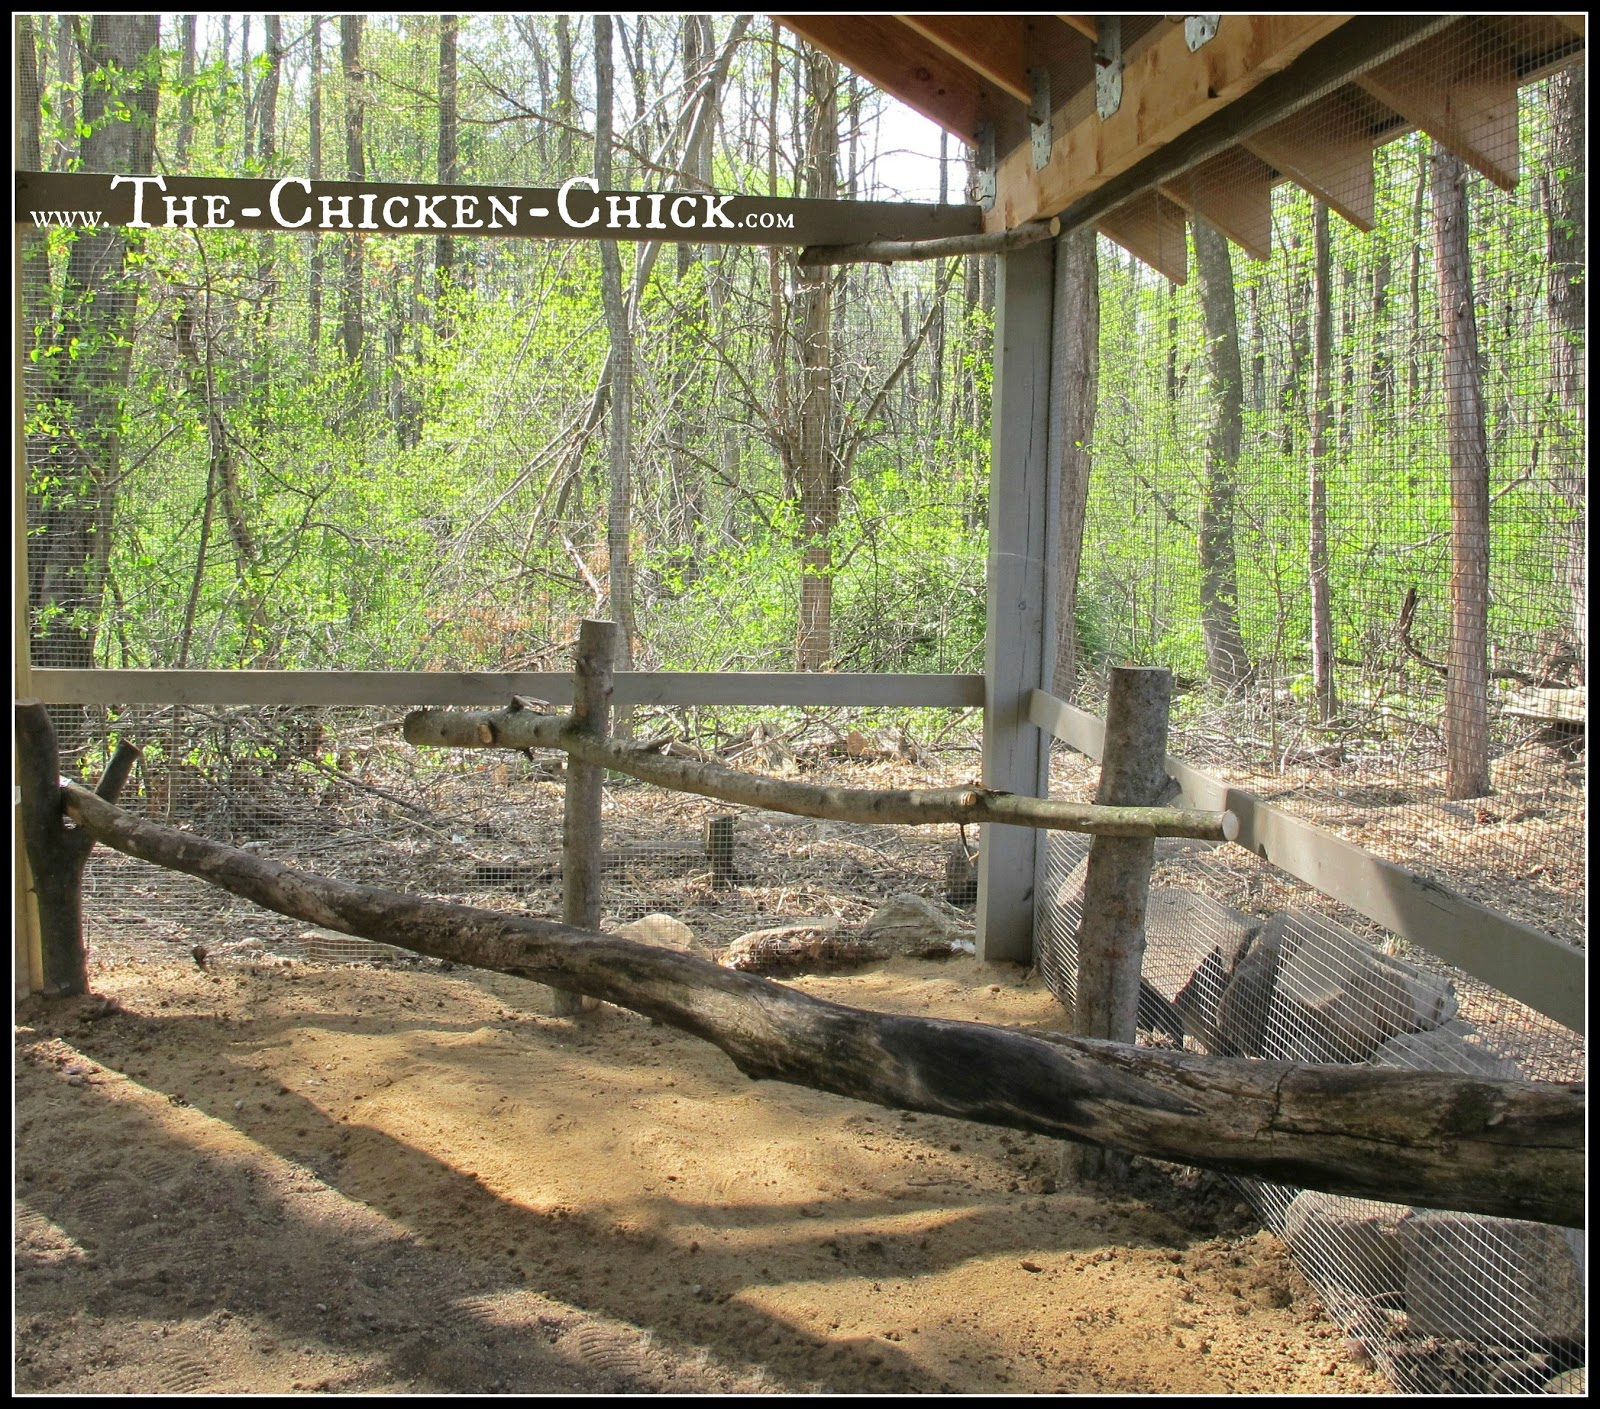 Add roosts, ladders, chairs, tree stumps to the run to create more vertical space for confined chickens.